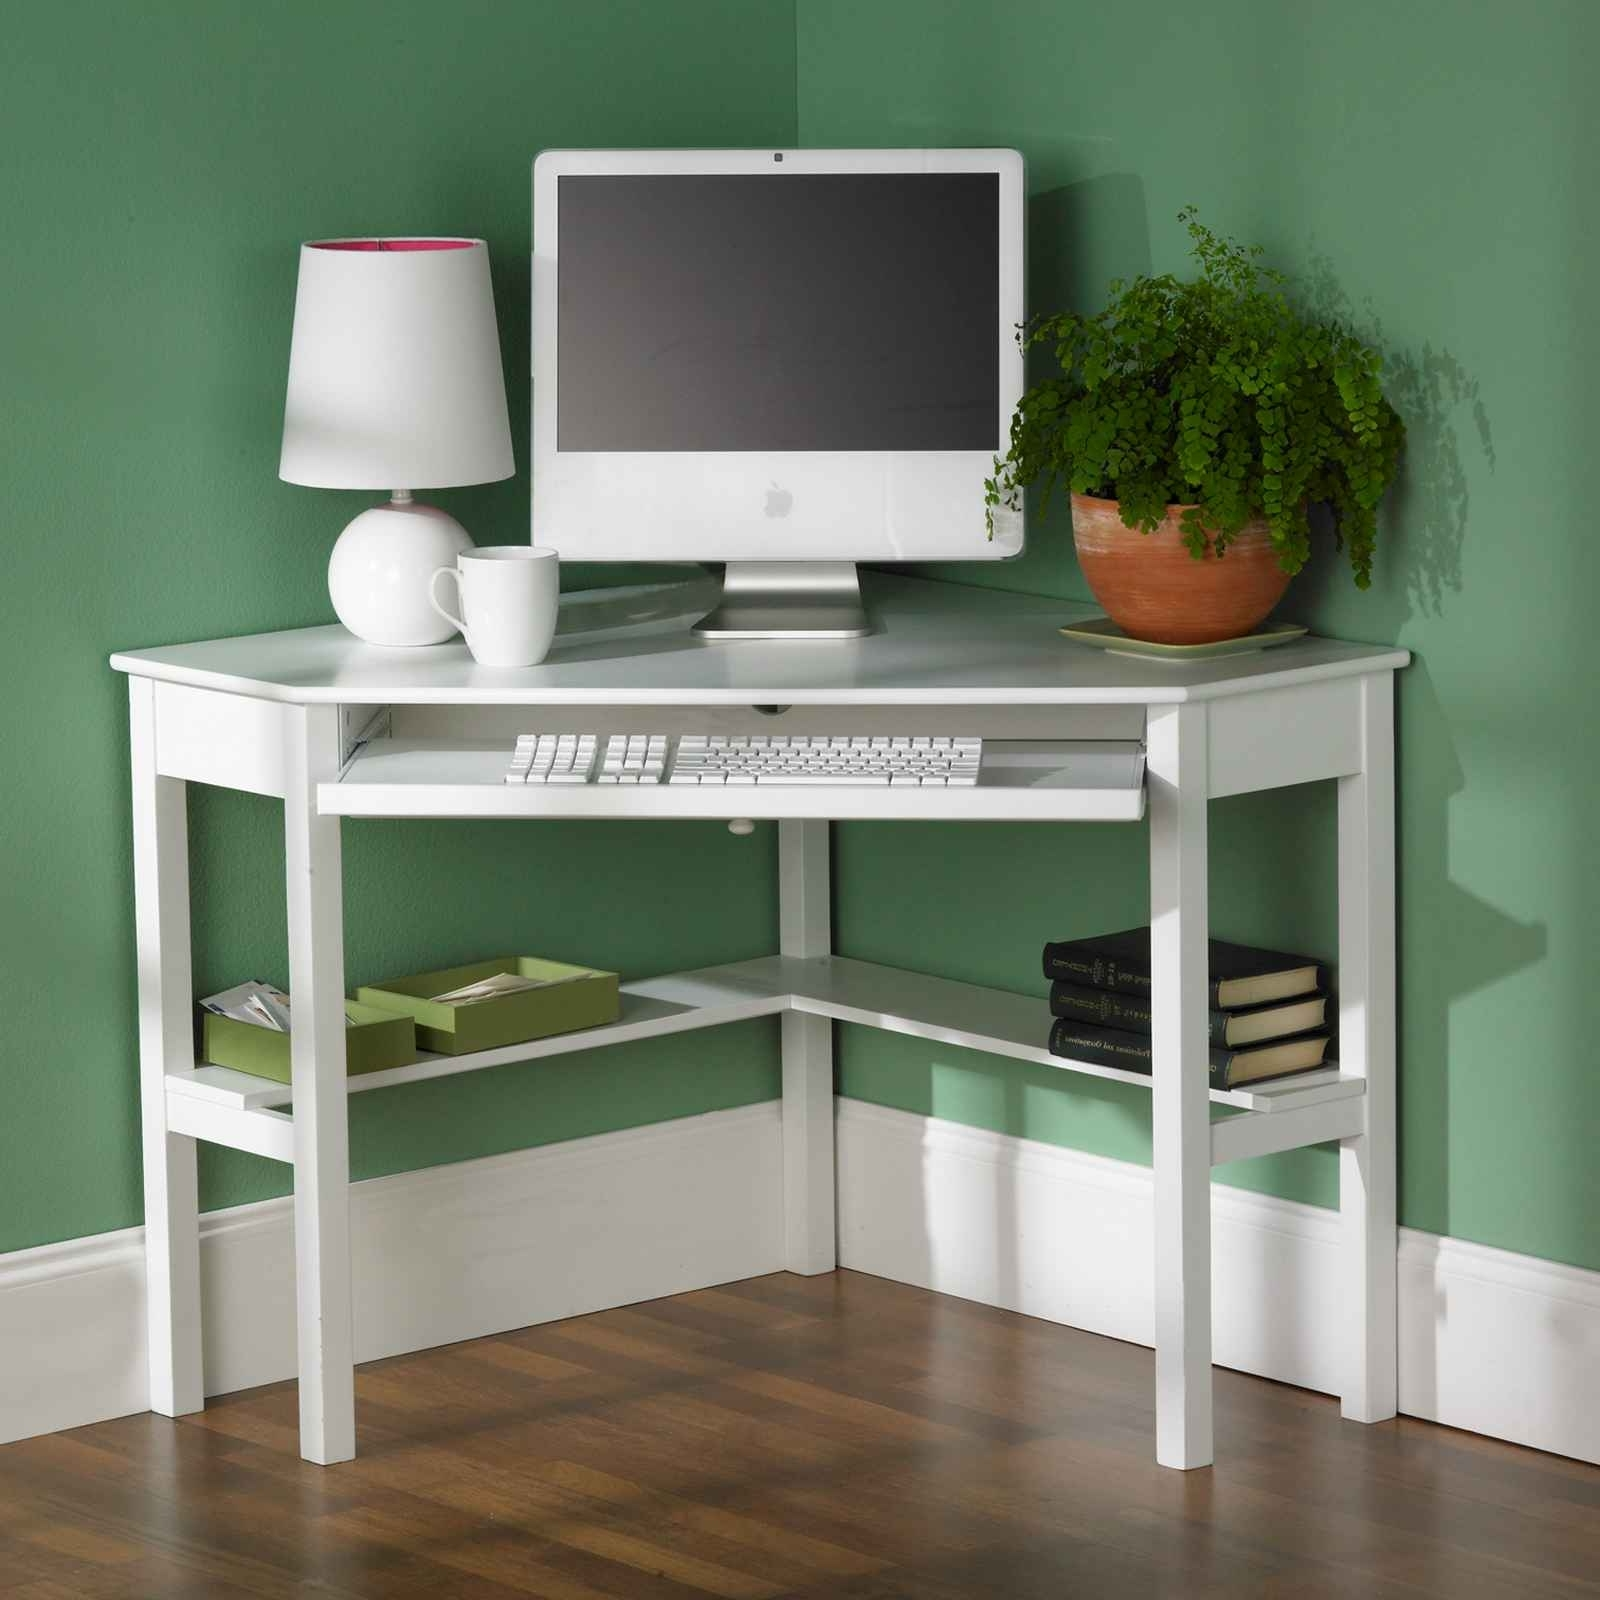 2019 Desk: 2017 Computer Desk Cheap Space Saving Design Cheap Corner With Regard To Computer Desks For Small Areas (View 3 of 20)